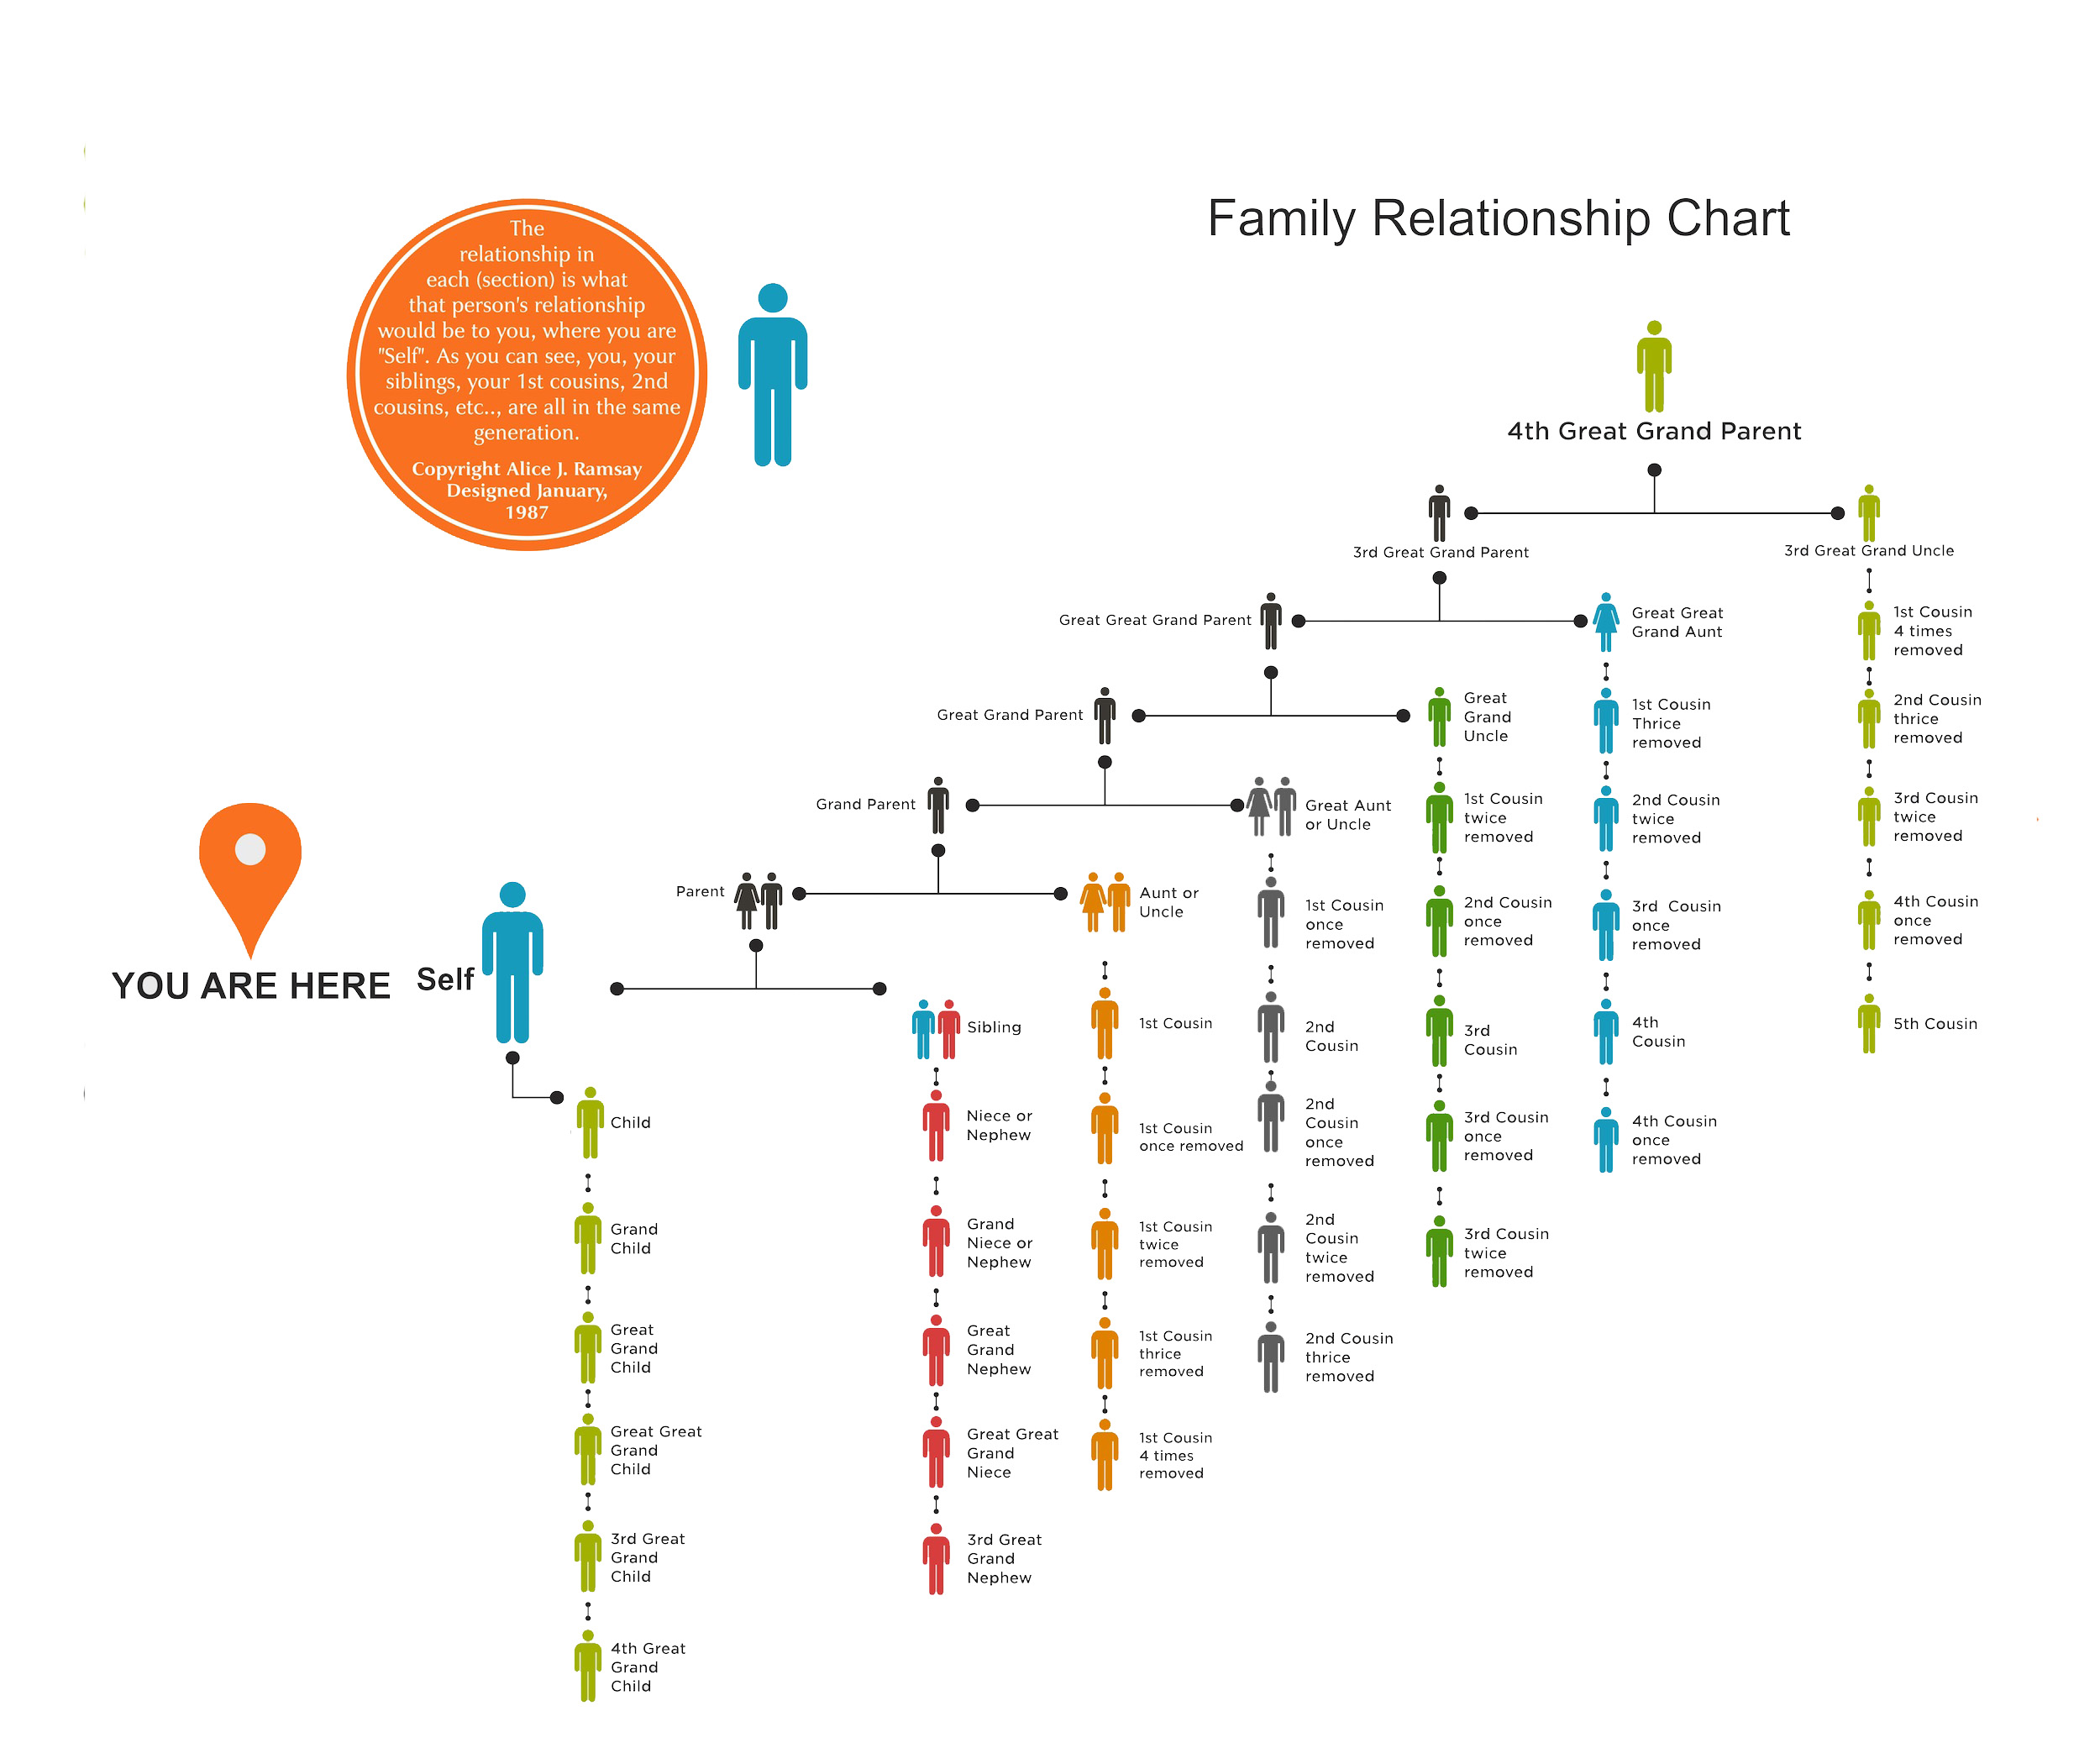 Family Relationship Chart